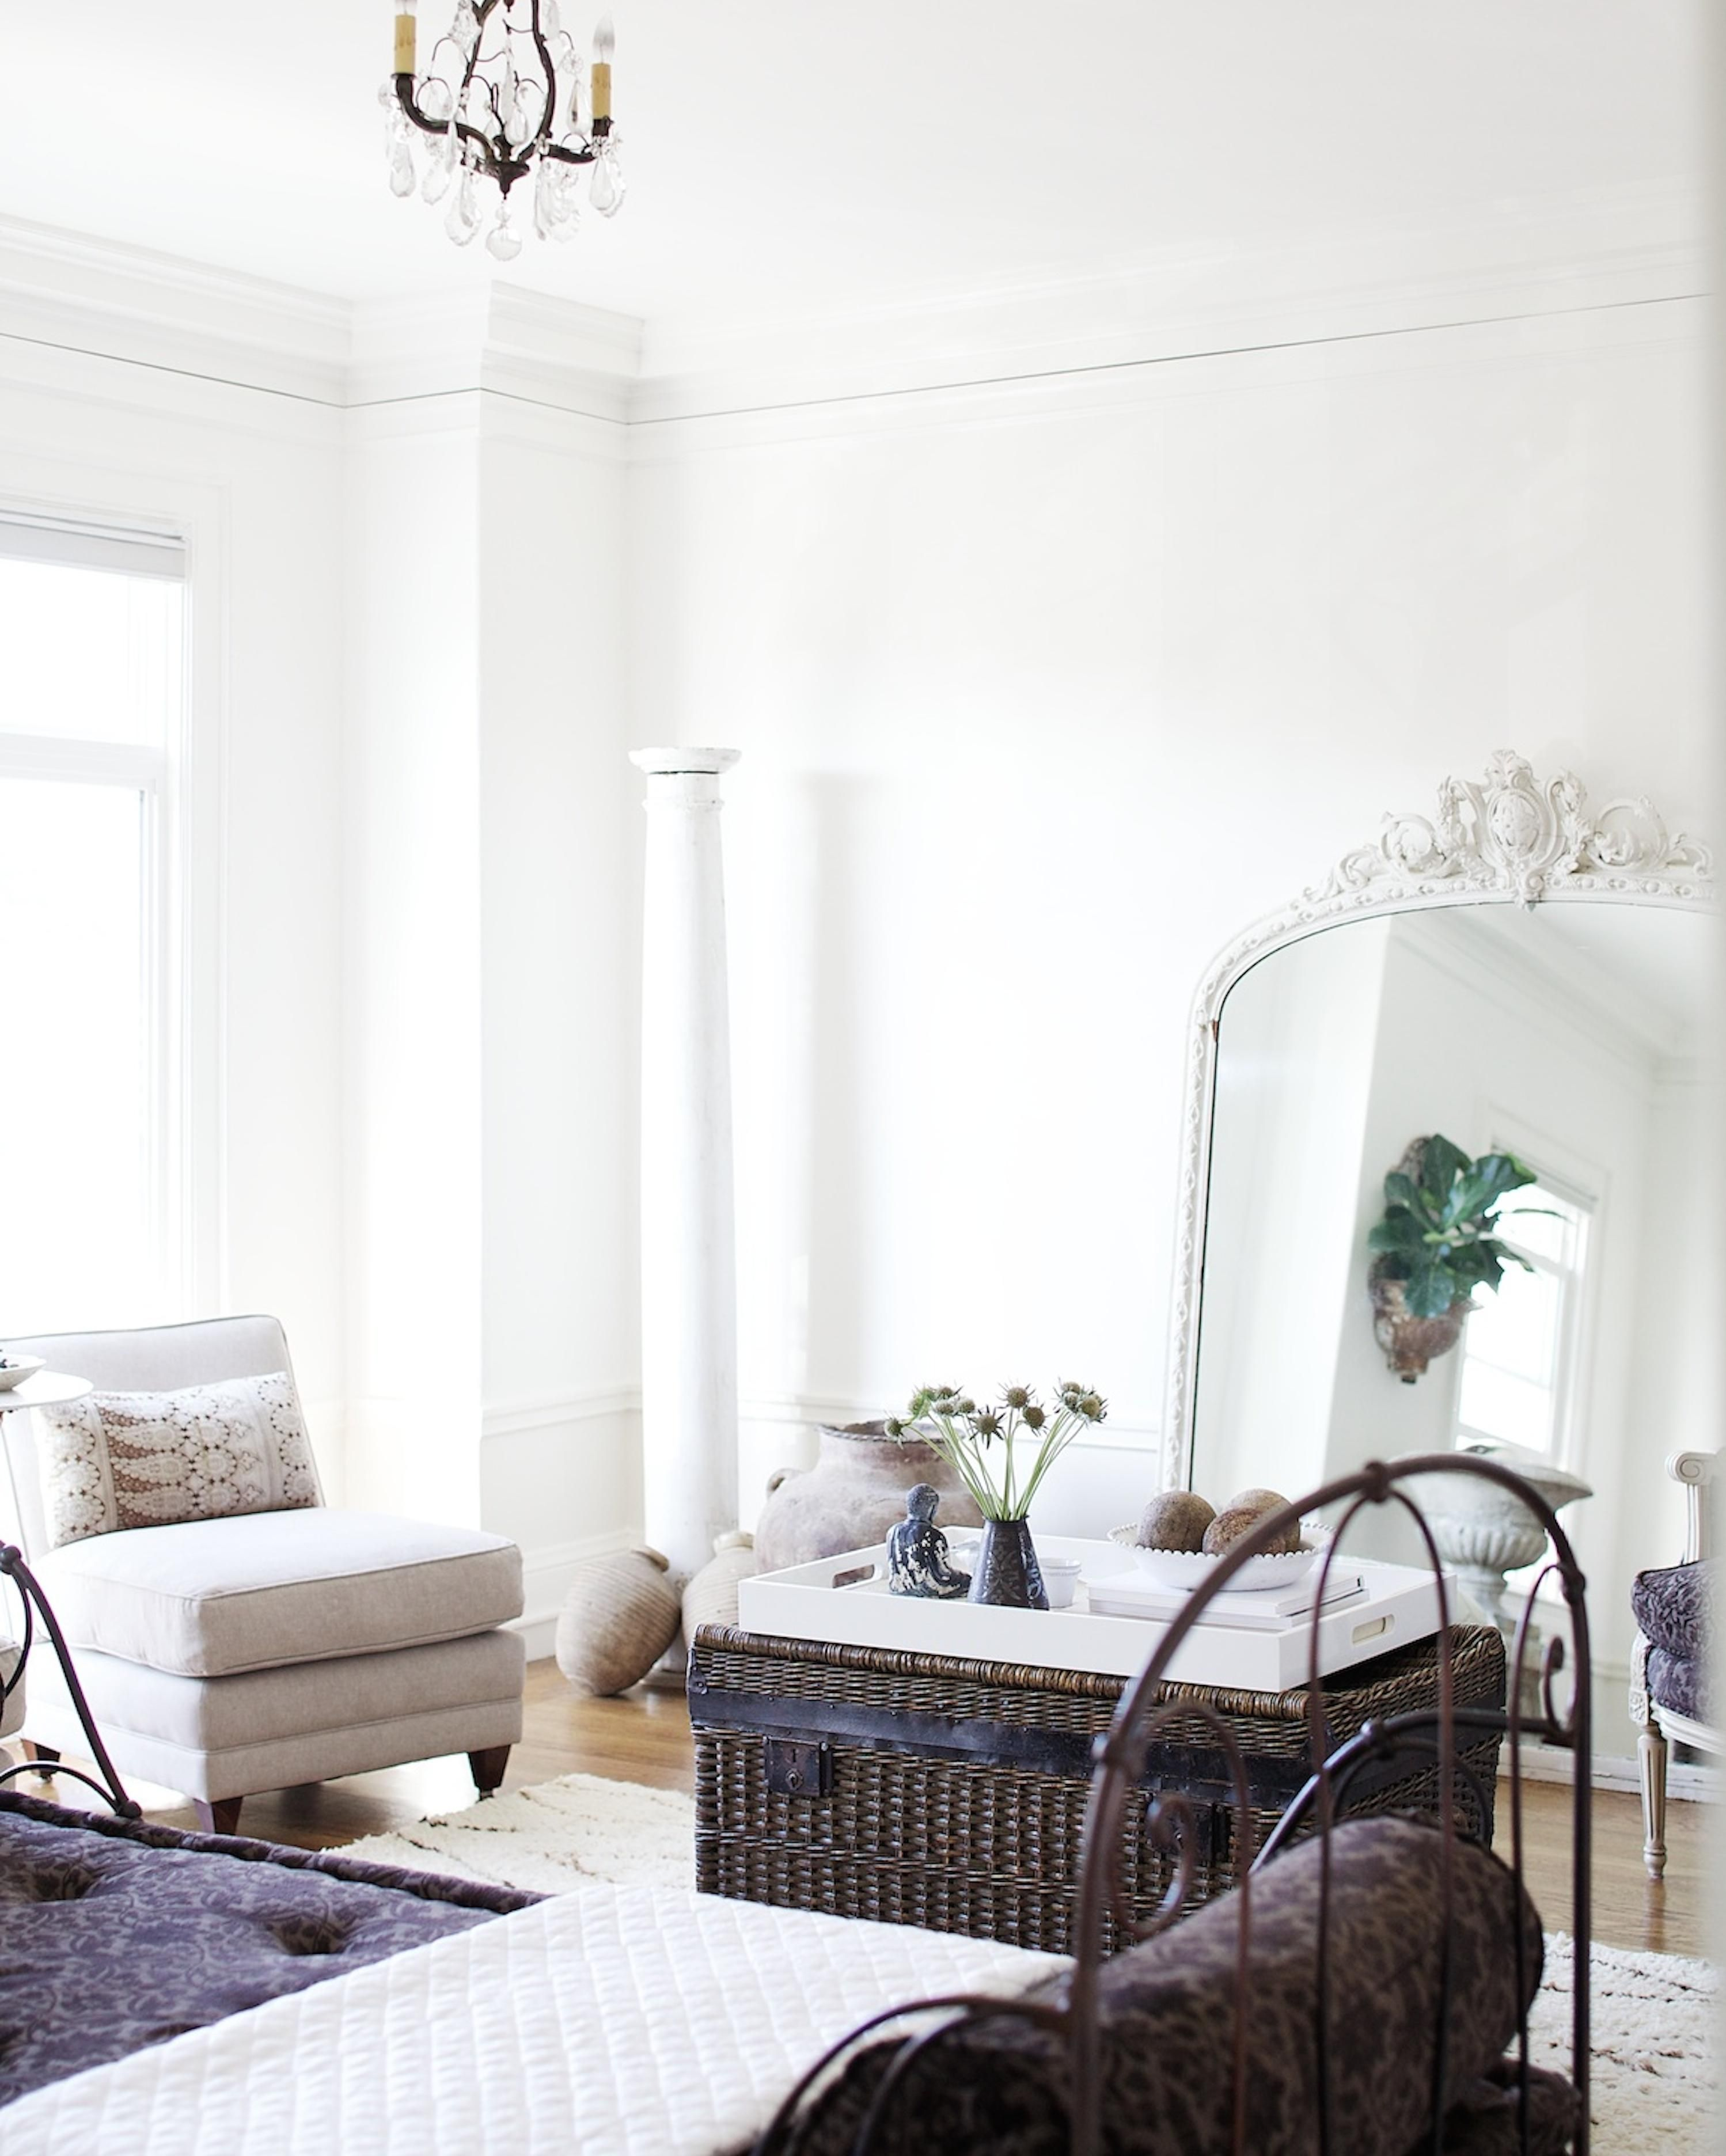 11 Living Room Decorating Ideas Every Homeowner Should Know Home Decor Best White Paint Home